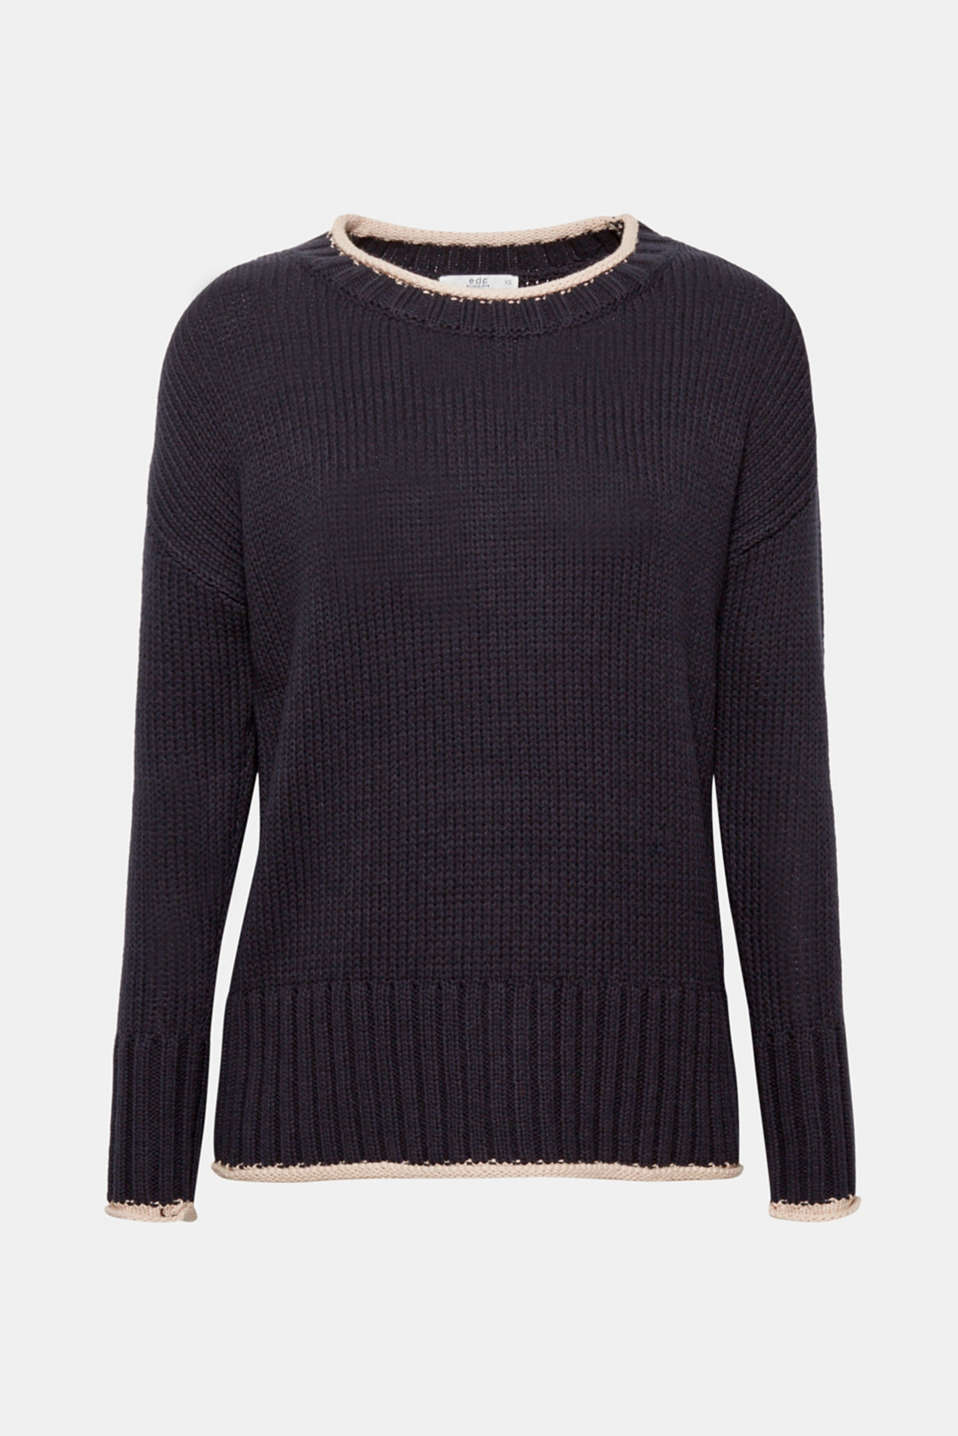 A sporty jumper in soft, blended cotton with contrasting colour rolled edges and wide-ribbed cuffs and hem for a fashionable, eye-catching look!